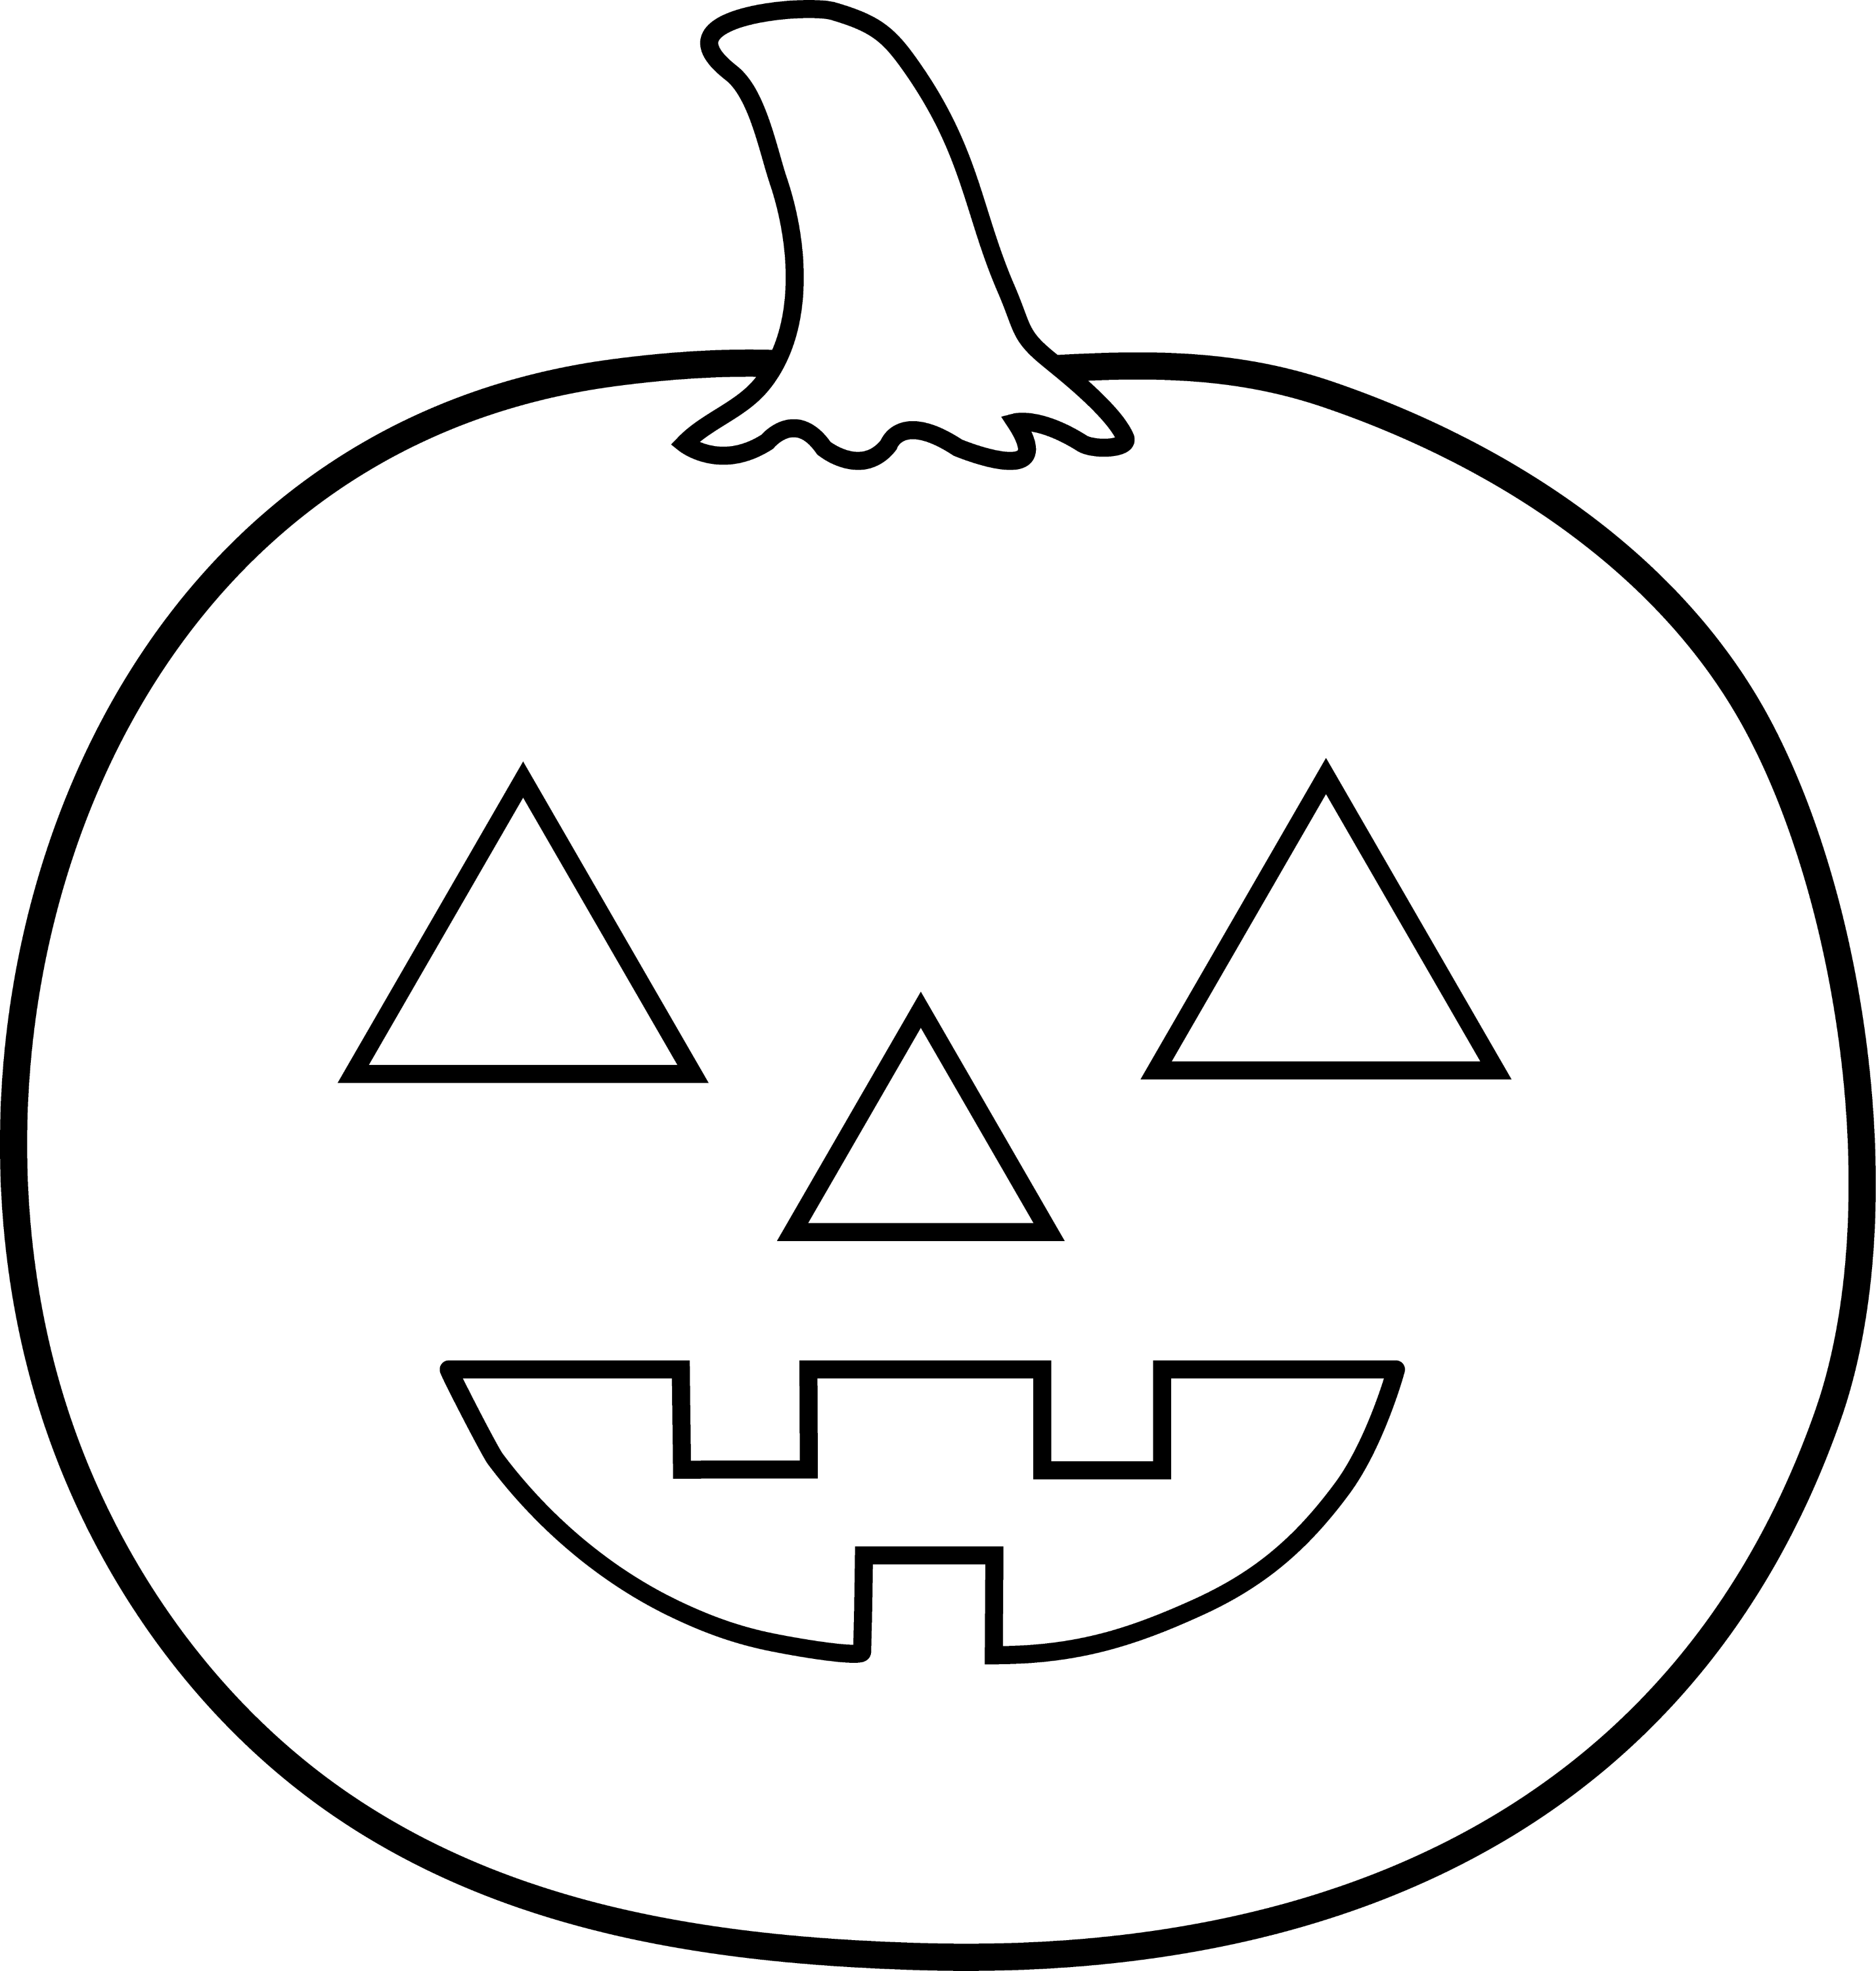 coloring pumpkin halloween clipart free printable pumpkin coloring pages for kids halloween coloring clipart pumpkin